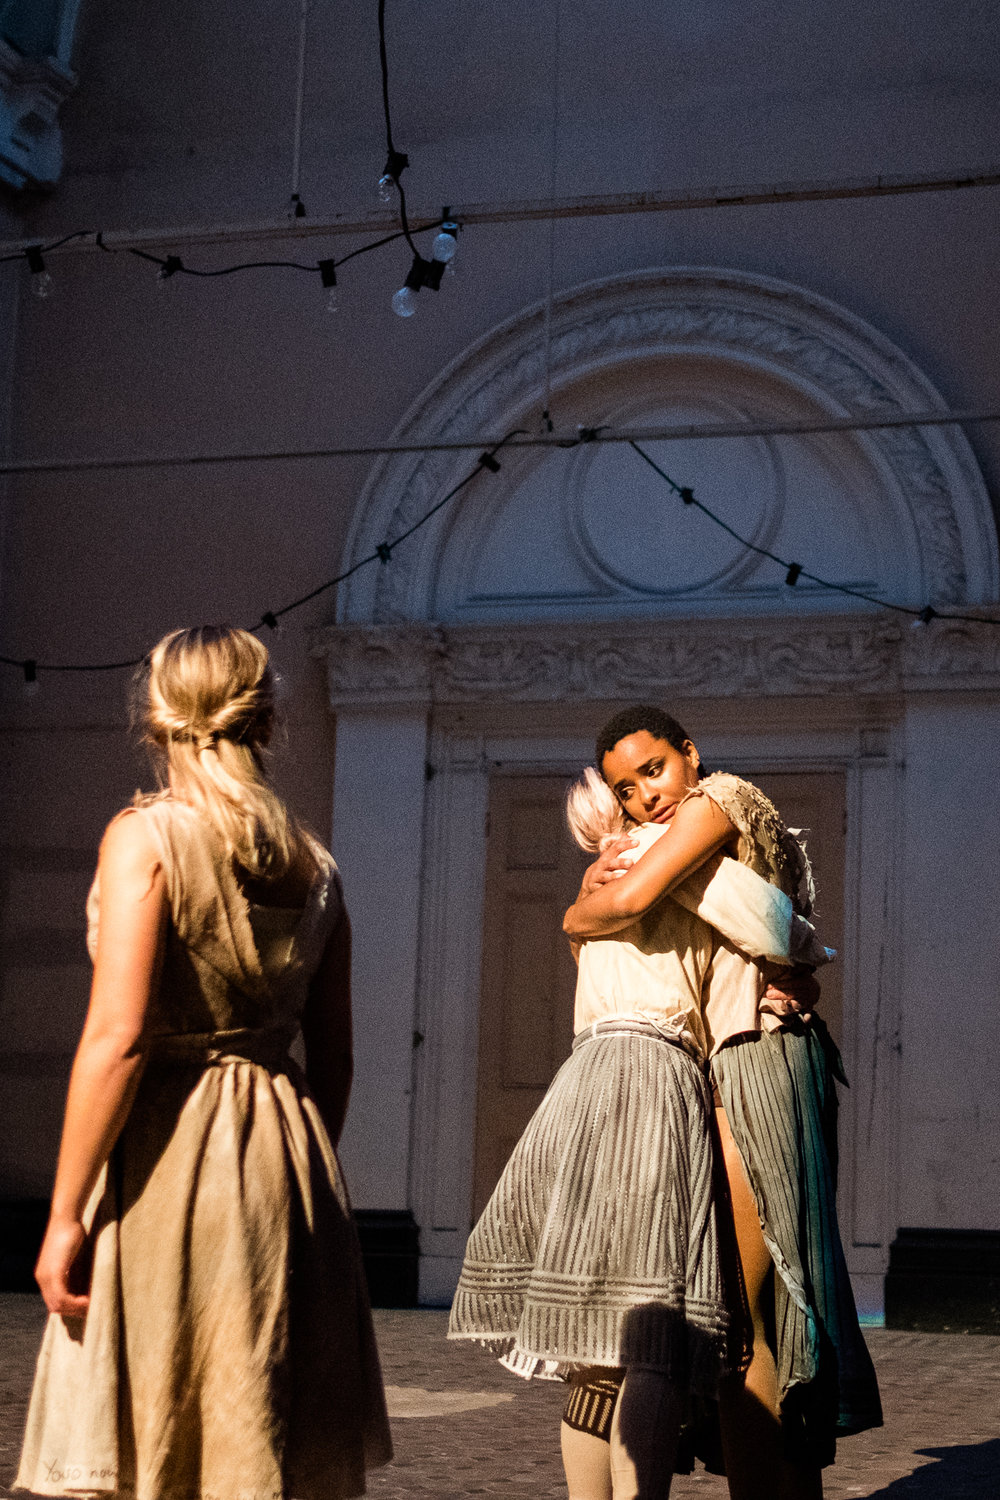 Restoke You Are Here Dance, Singing, Poetry, Art, Culture, Migration, Journey, Home  Performance Documentary Photographs at The Wedgwood Institute Burslem by Jenny Harper Photography-6.jpg